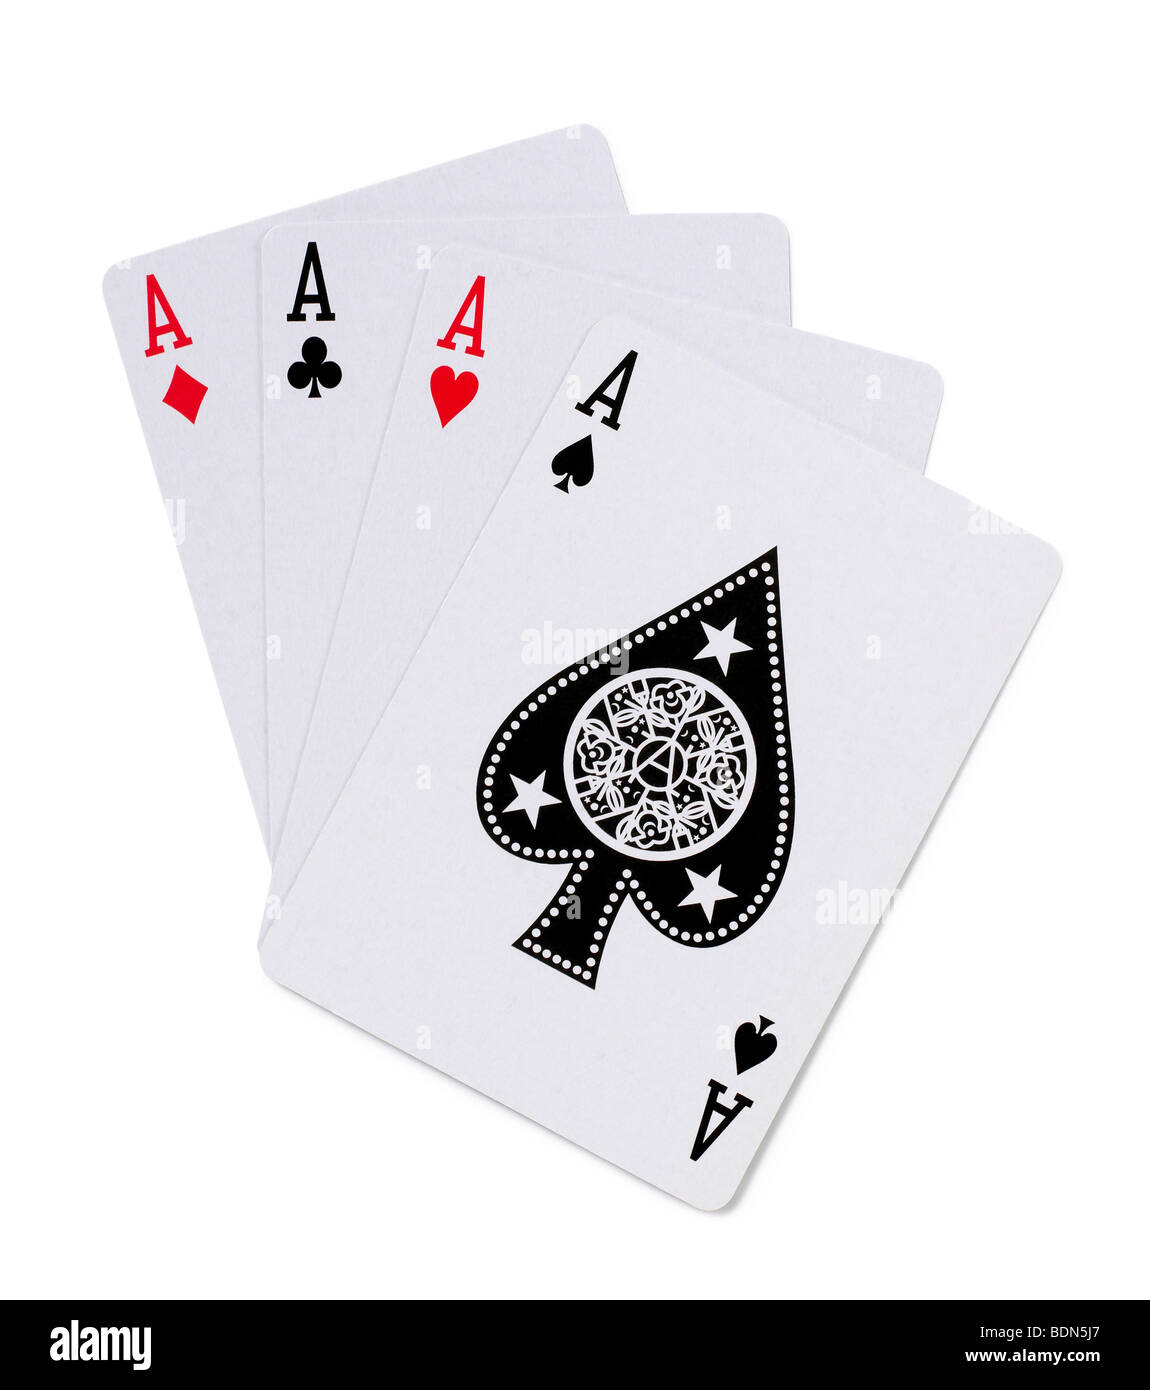 Playing cards 4 aces - Stock Image